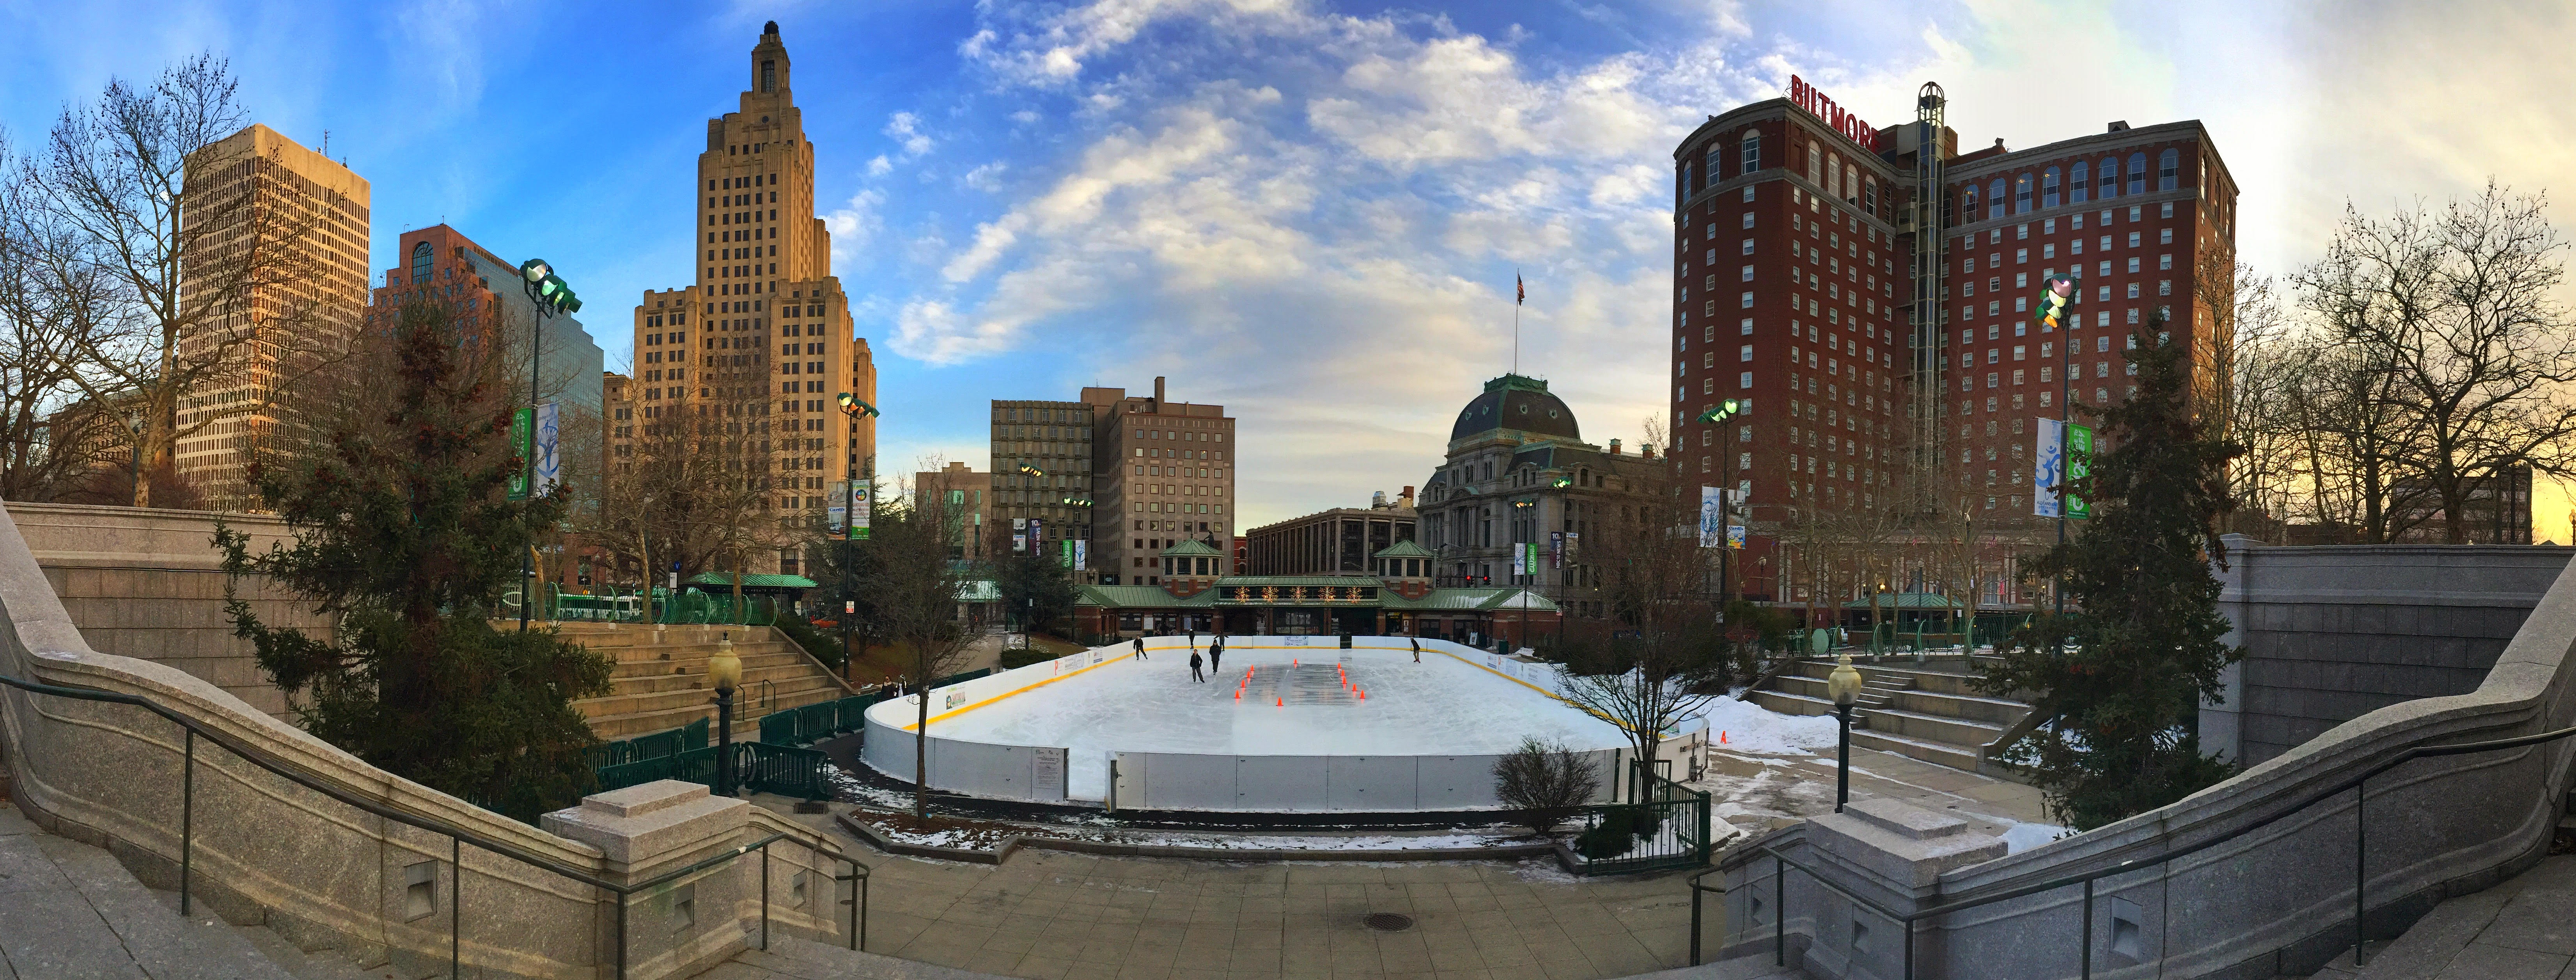 The Providence Rink The Providence Rink